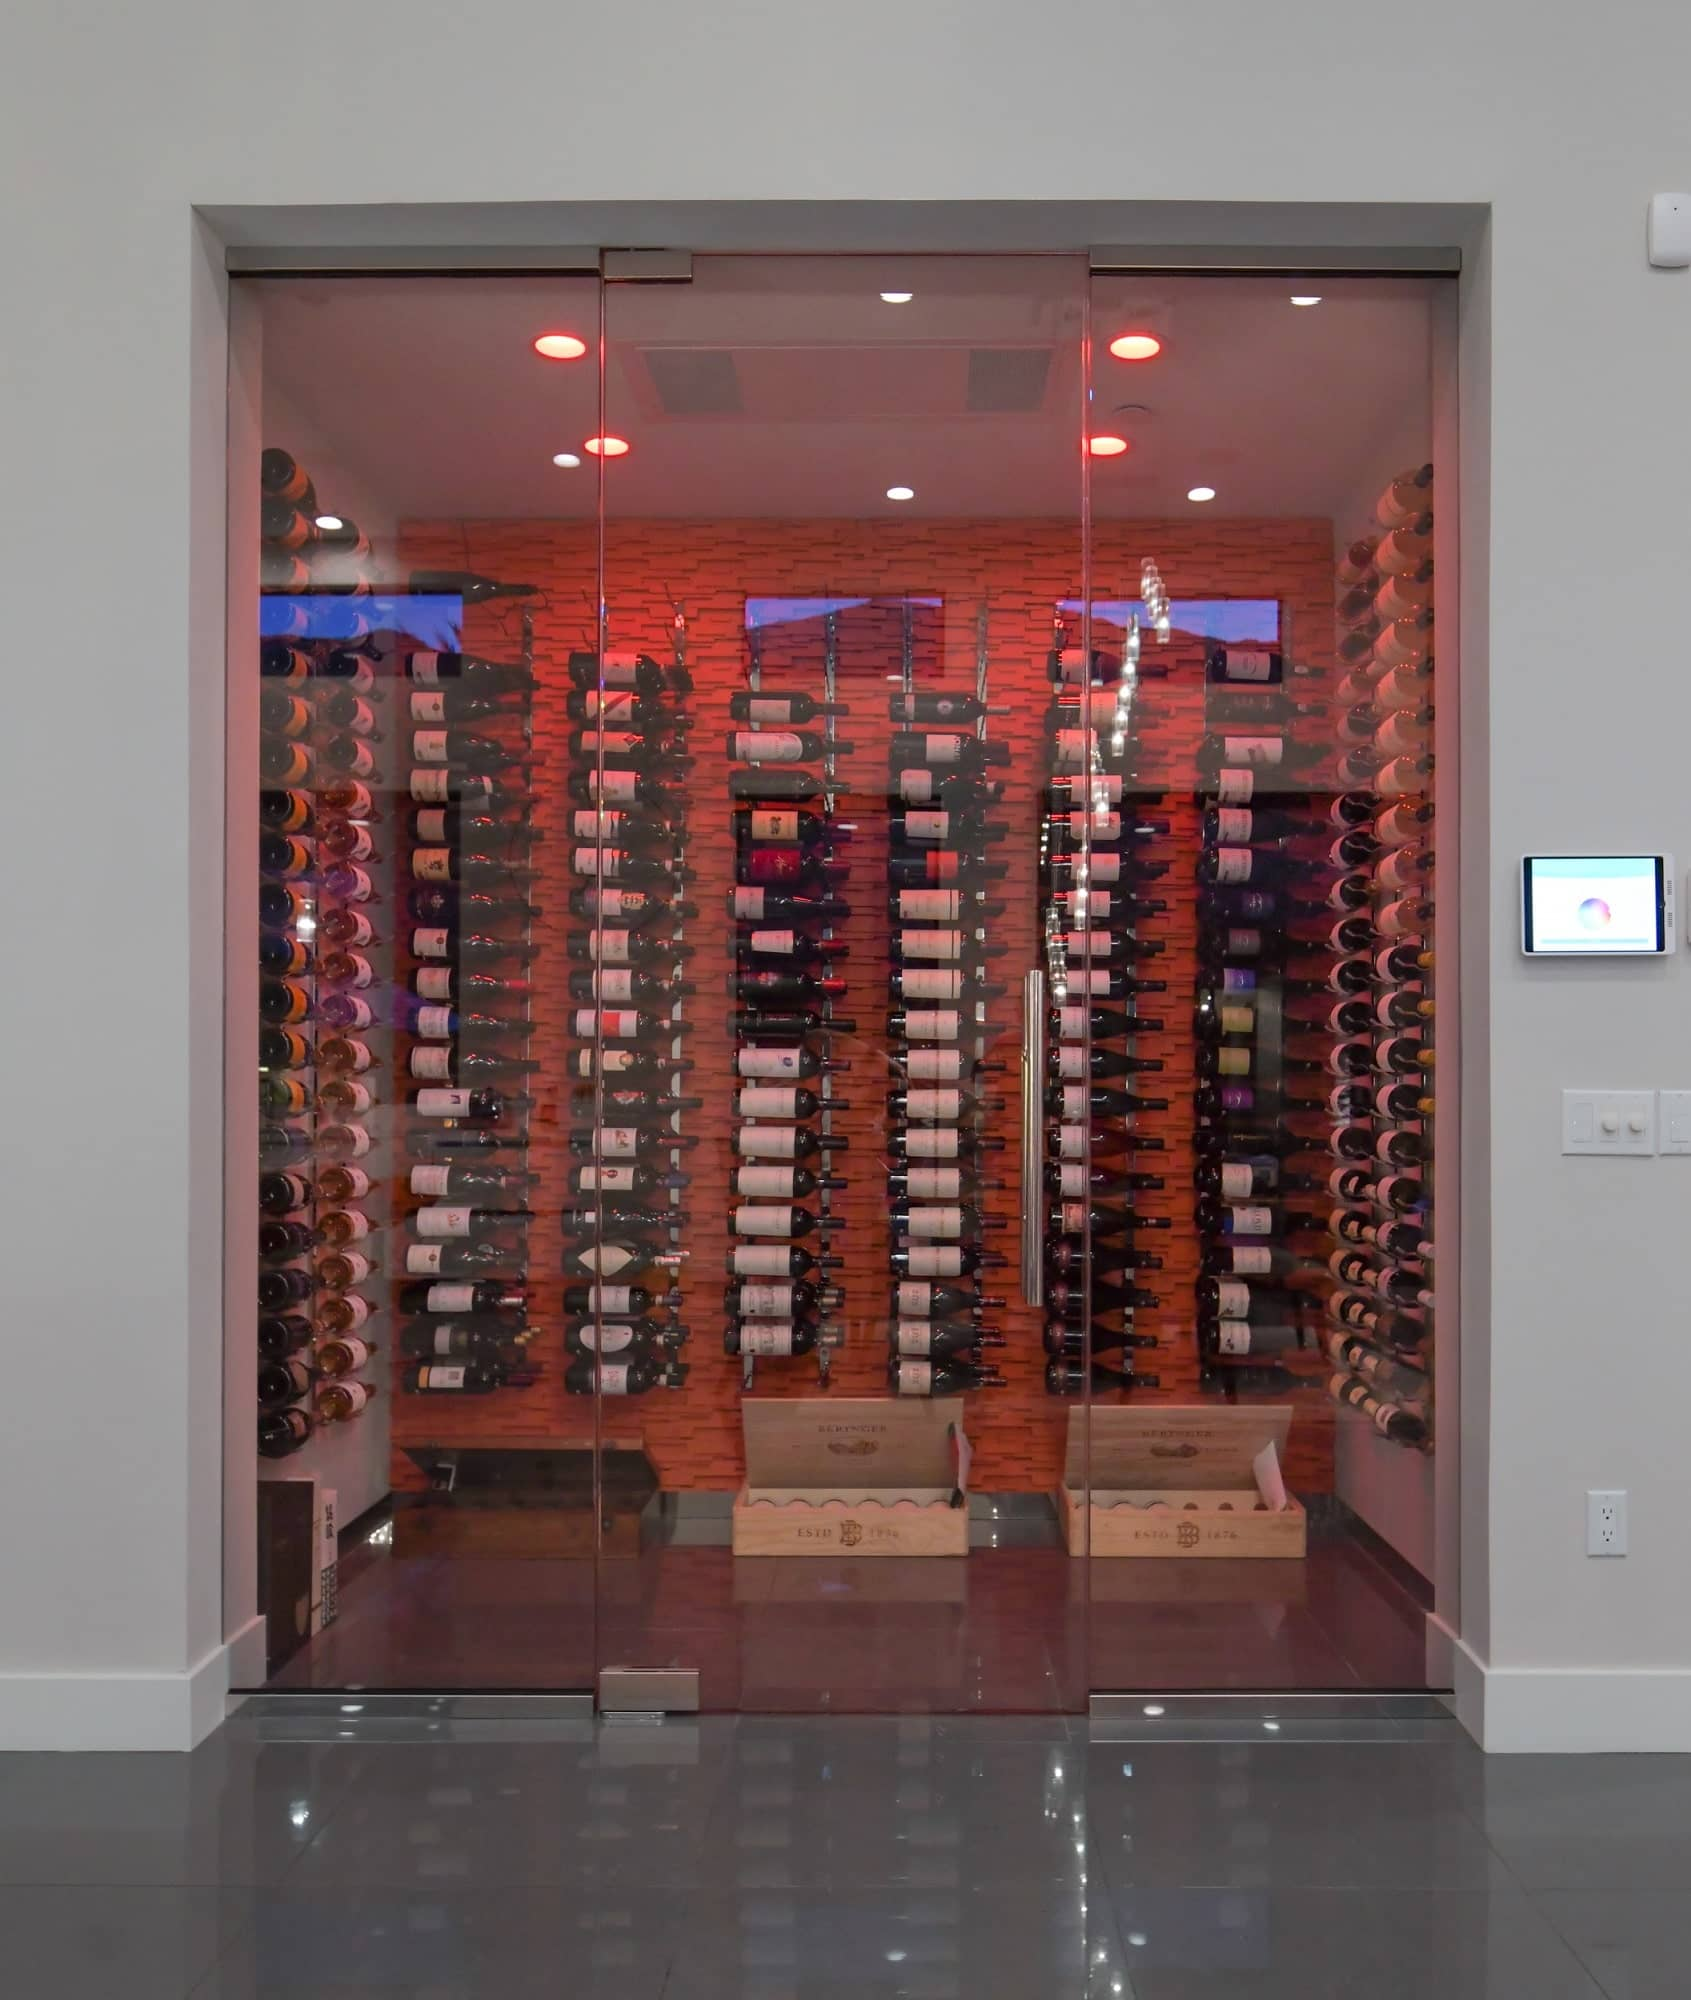 Color of LED lighting is adjustable in this wine cellar For this one lighting was to red